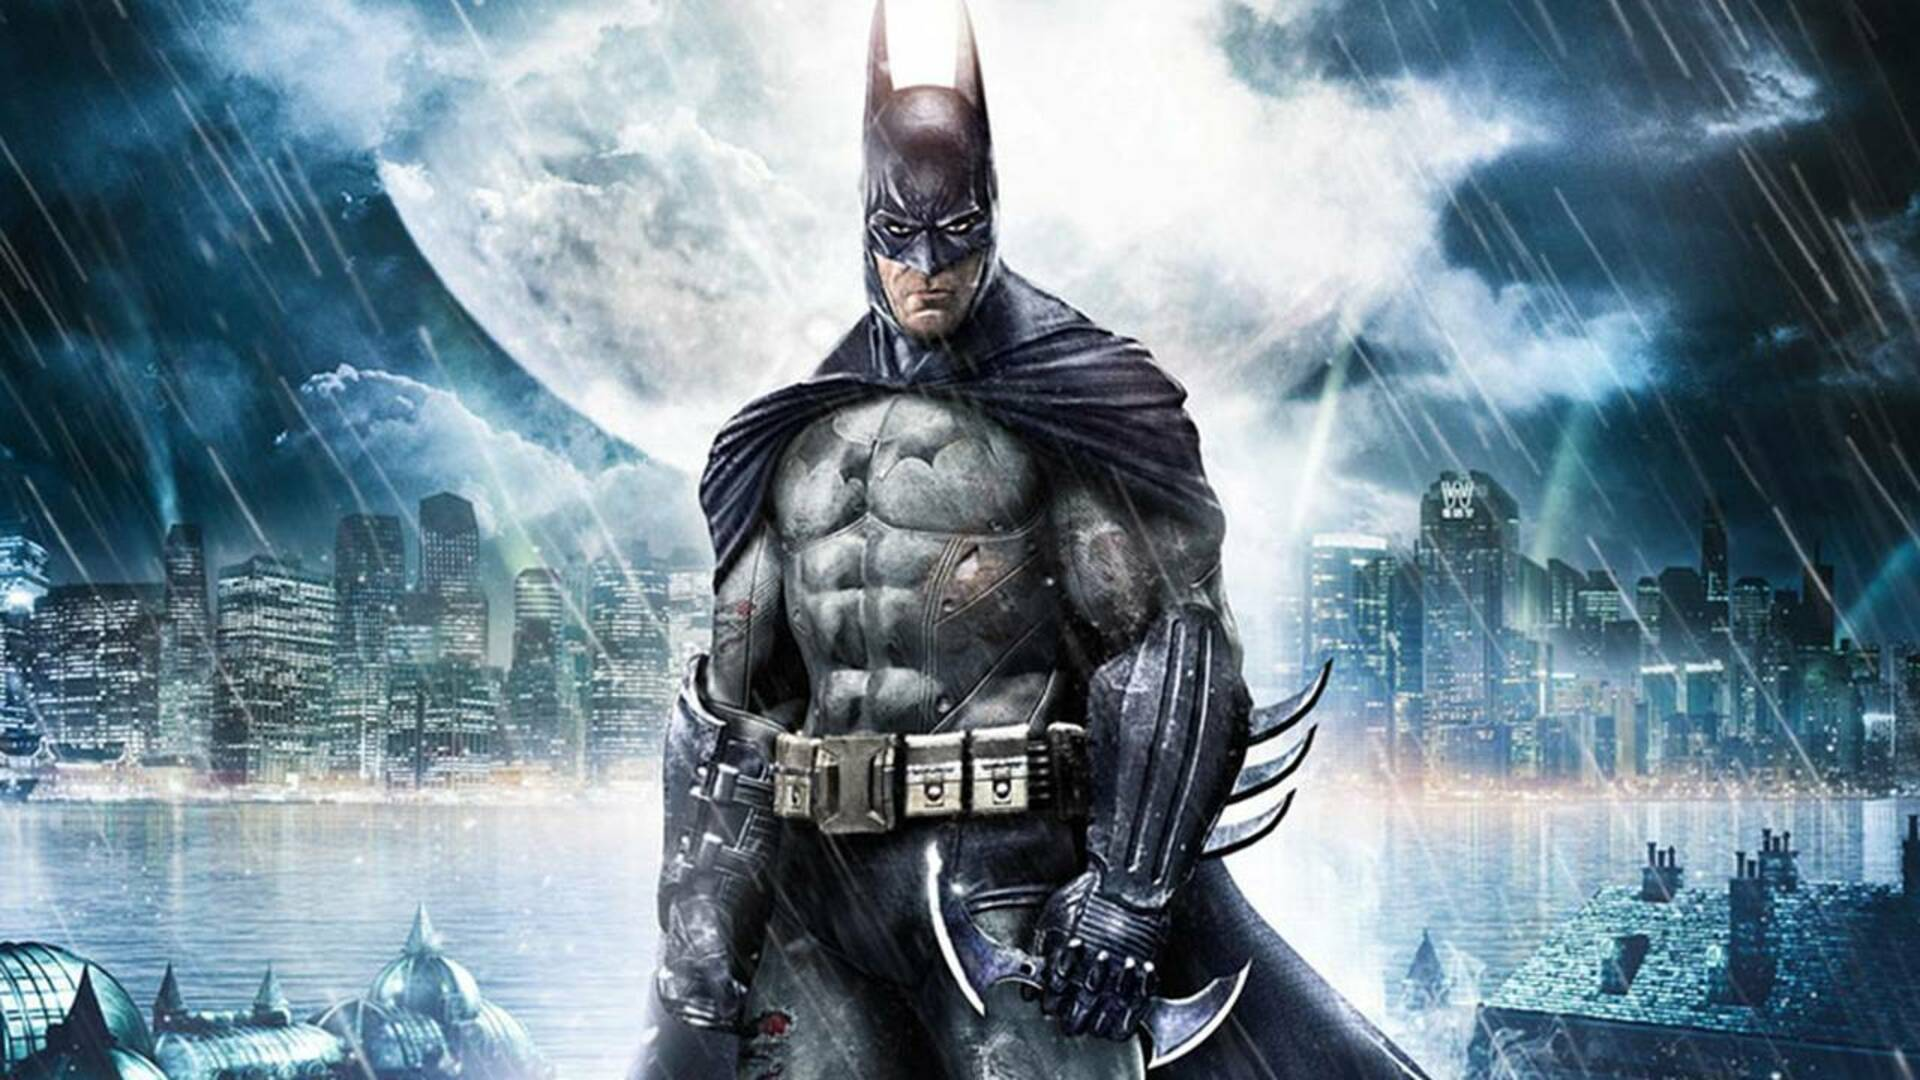 10 Years Ago, Batman: Arkham Asylum Showed Us That Superhero Games Could Be More